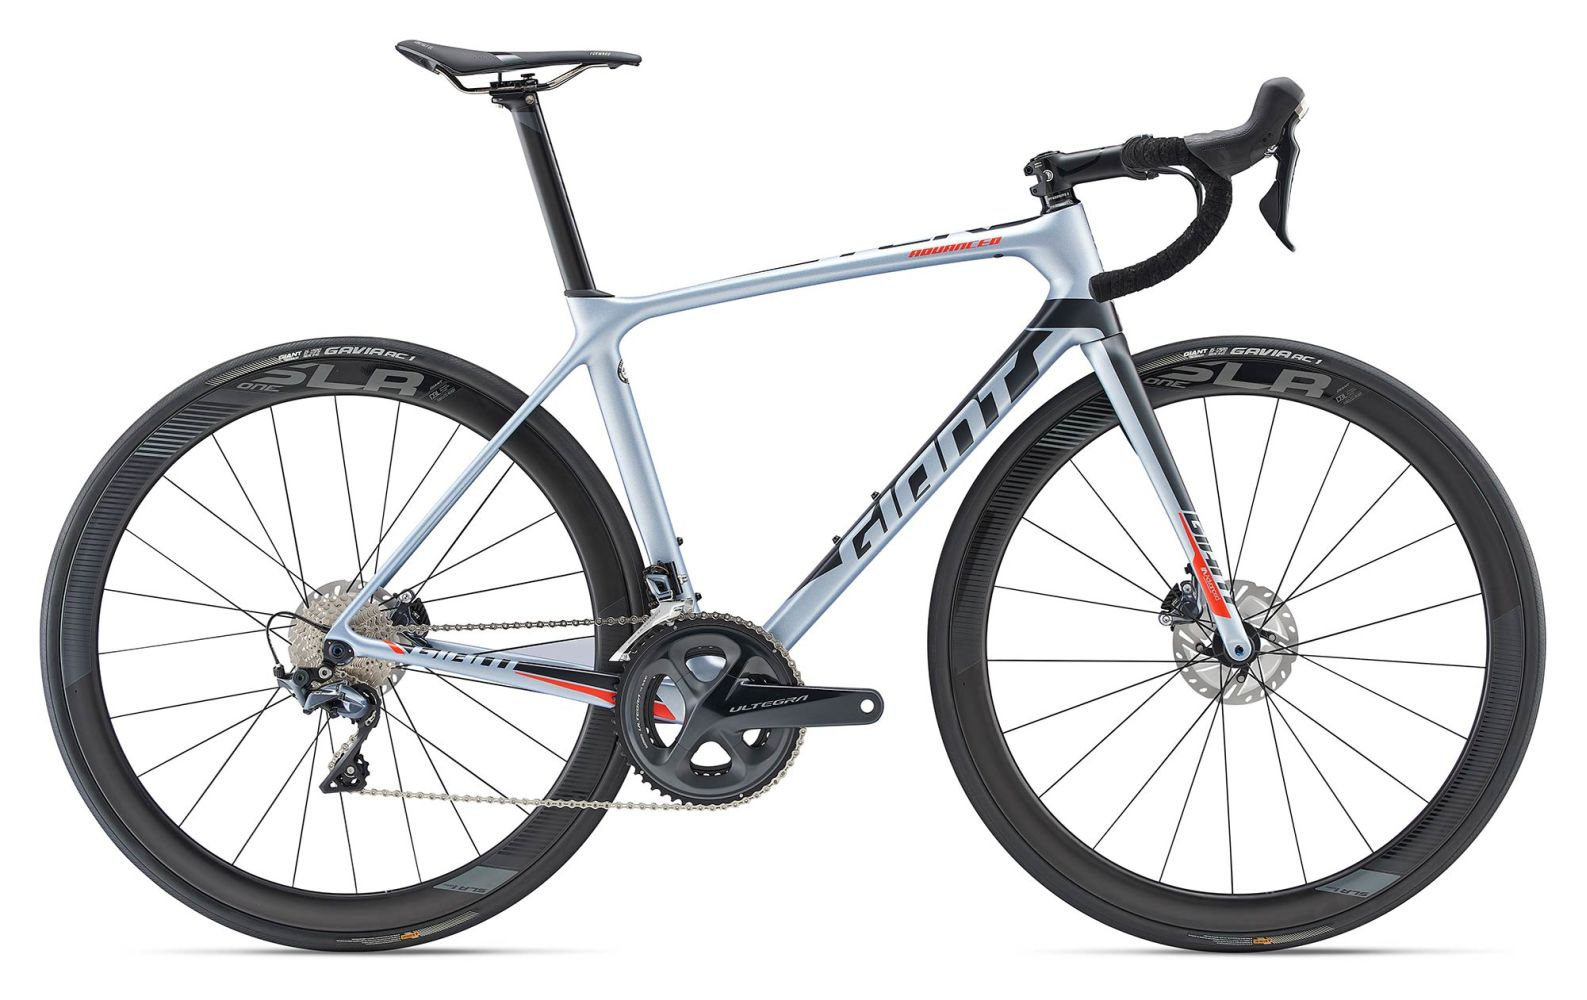 5b96f0c95ee Giant TCR 2019 road bike range explained - Cycling Weekly